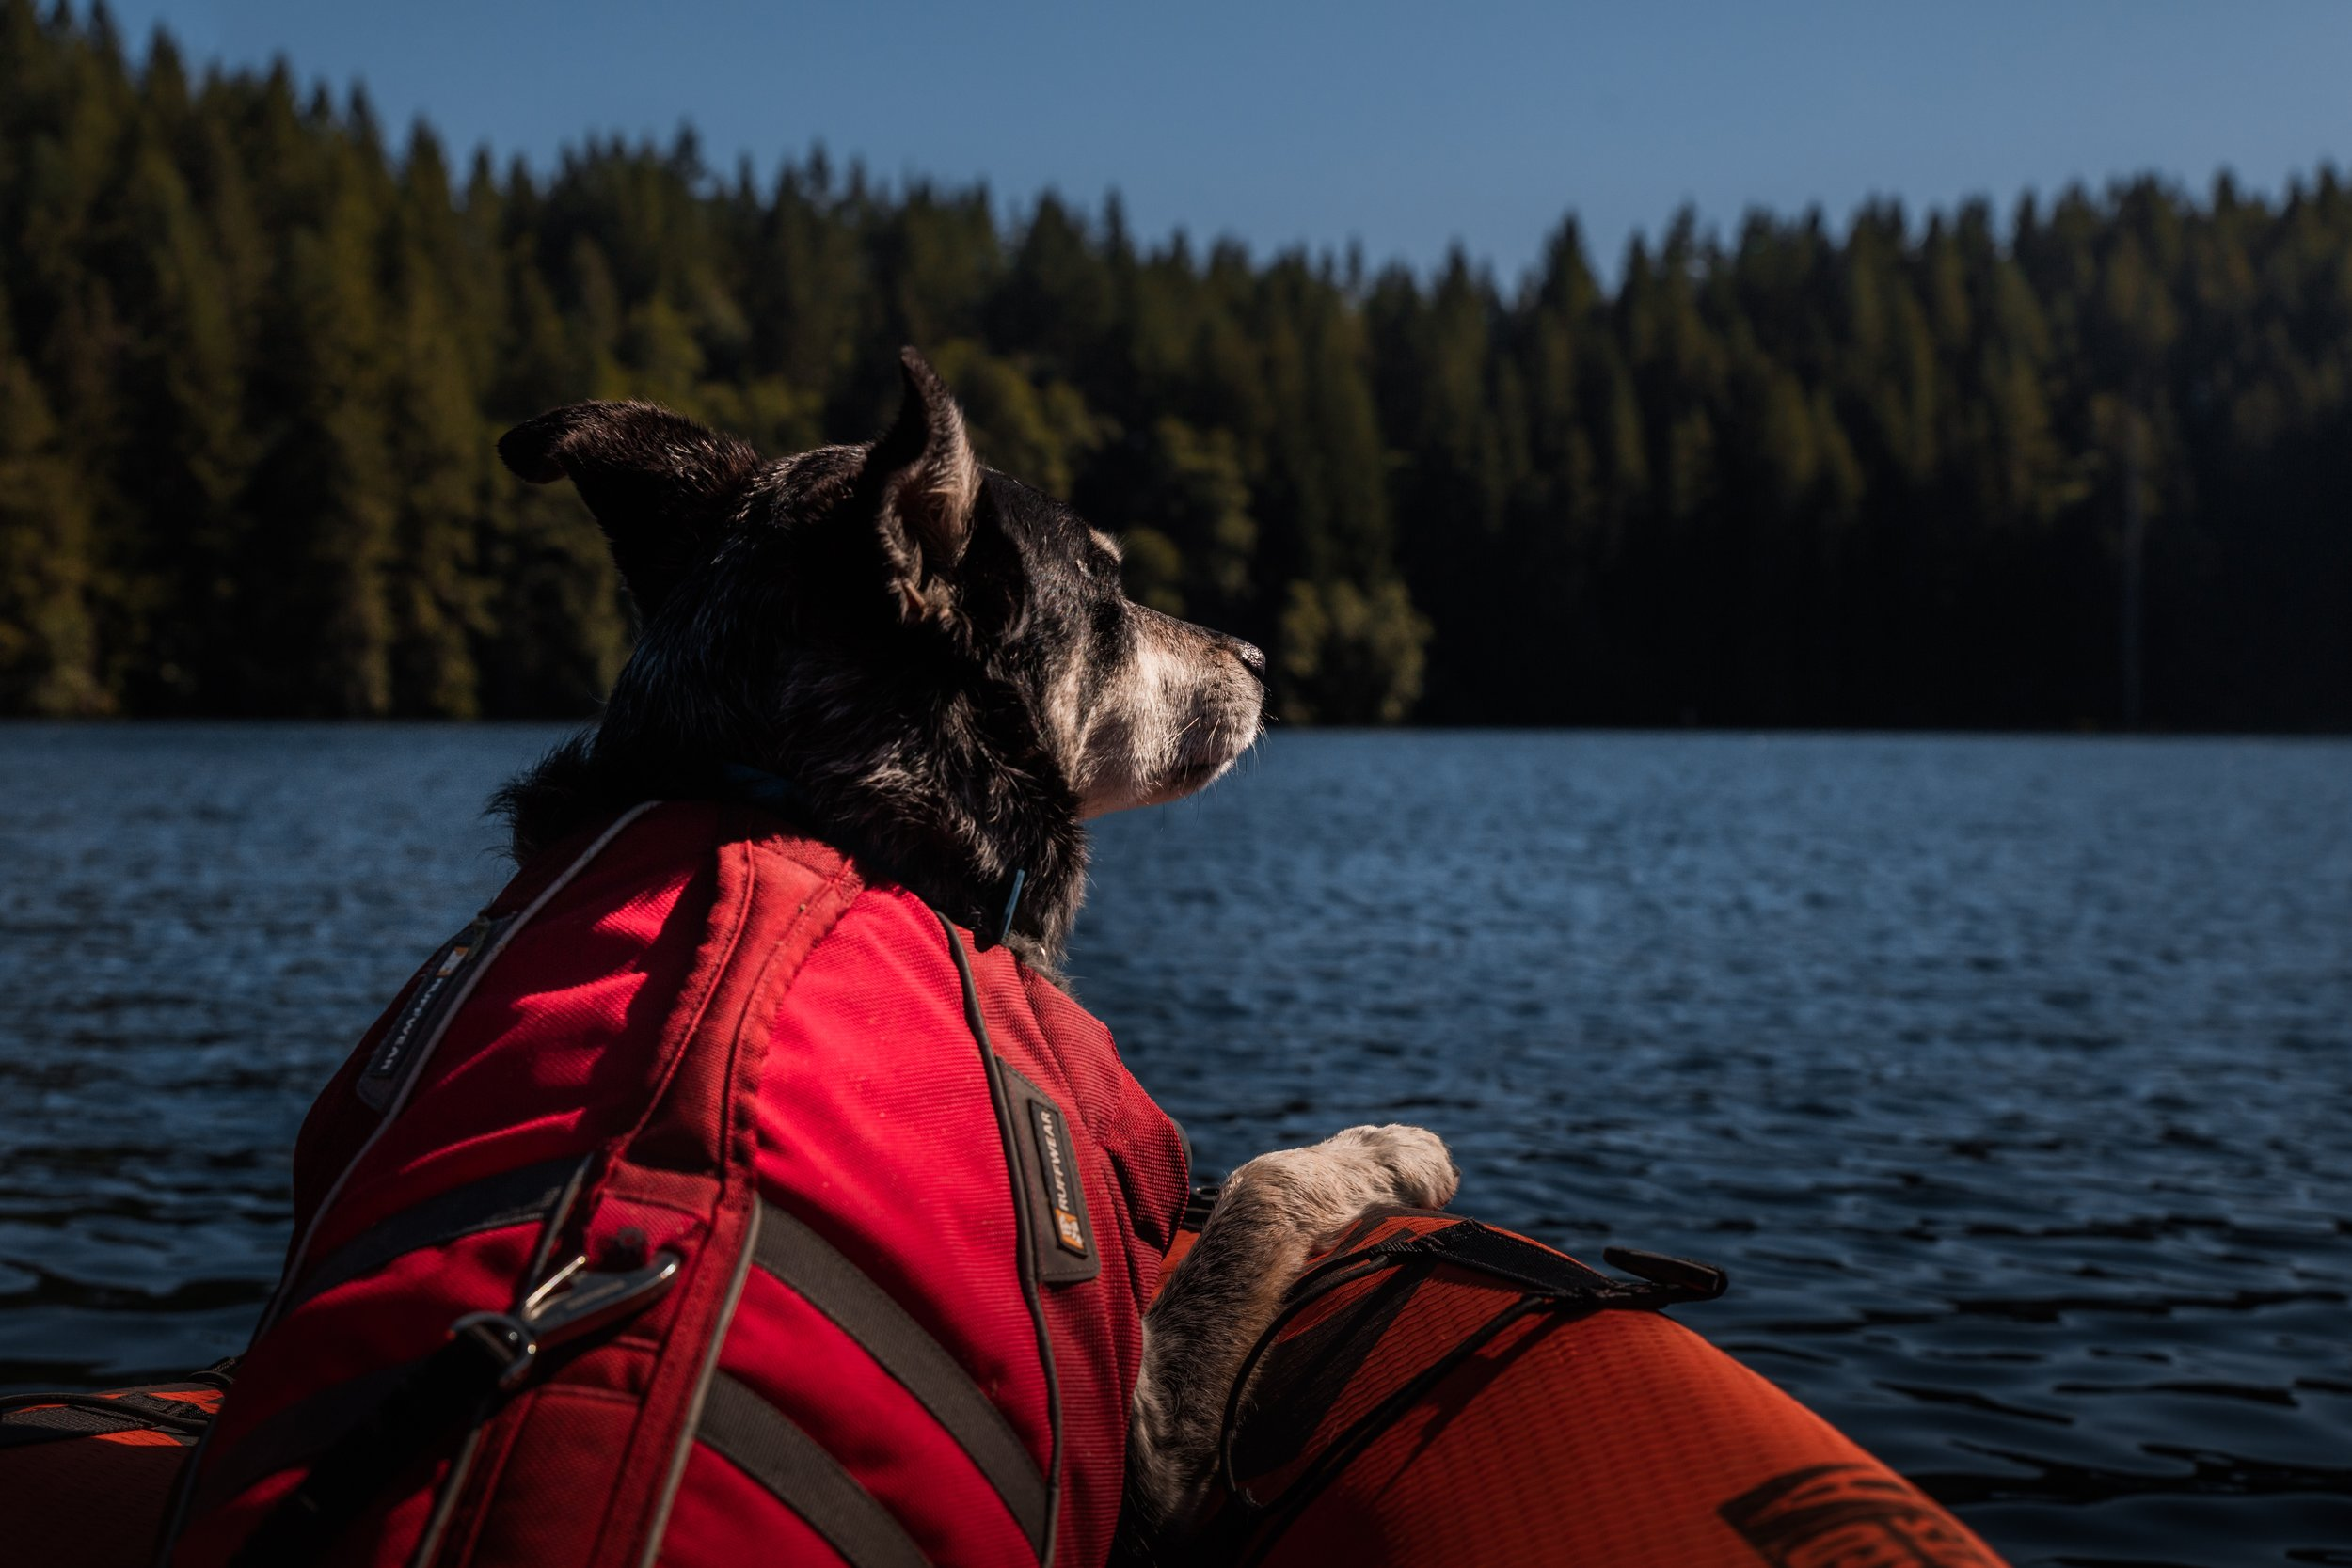 Homeward Bound Animal Care  Lakes Region NH  Boating with your dog safety tips  Ice out New Hampshire  Dog life jacket